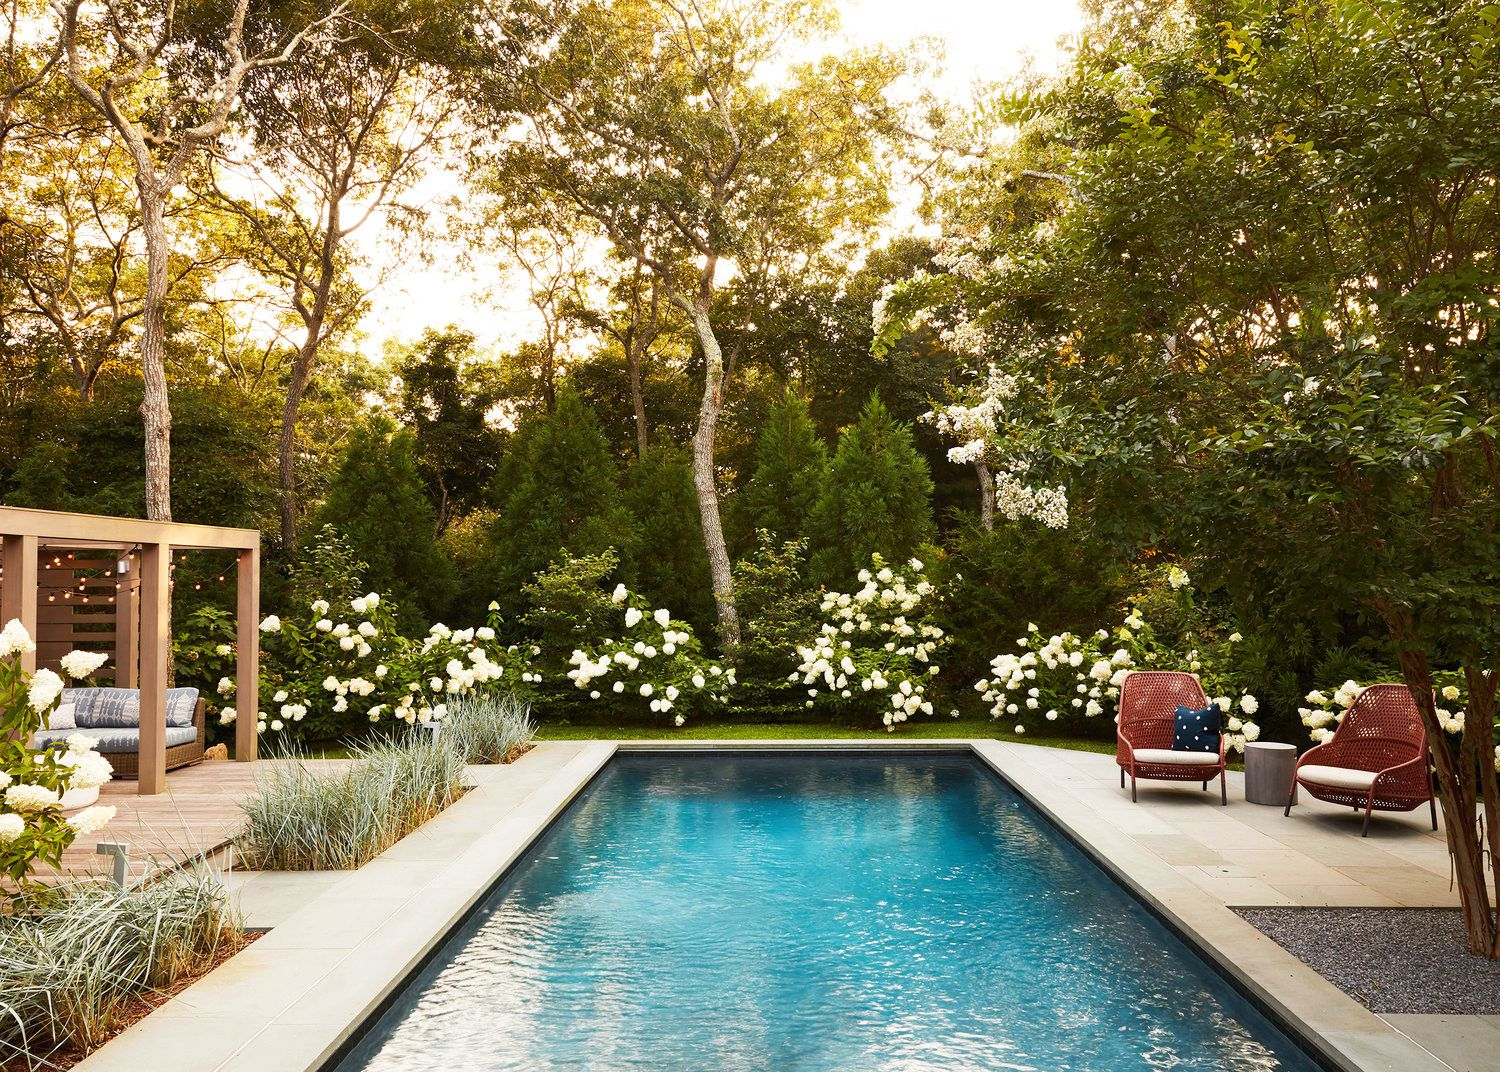 37 Breathtaking Backyard Ideas Outdoor Space Design Inspiration with 12 Some of the Coolest Designs of How to Build New Backyard Ideas